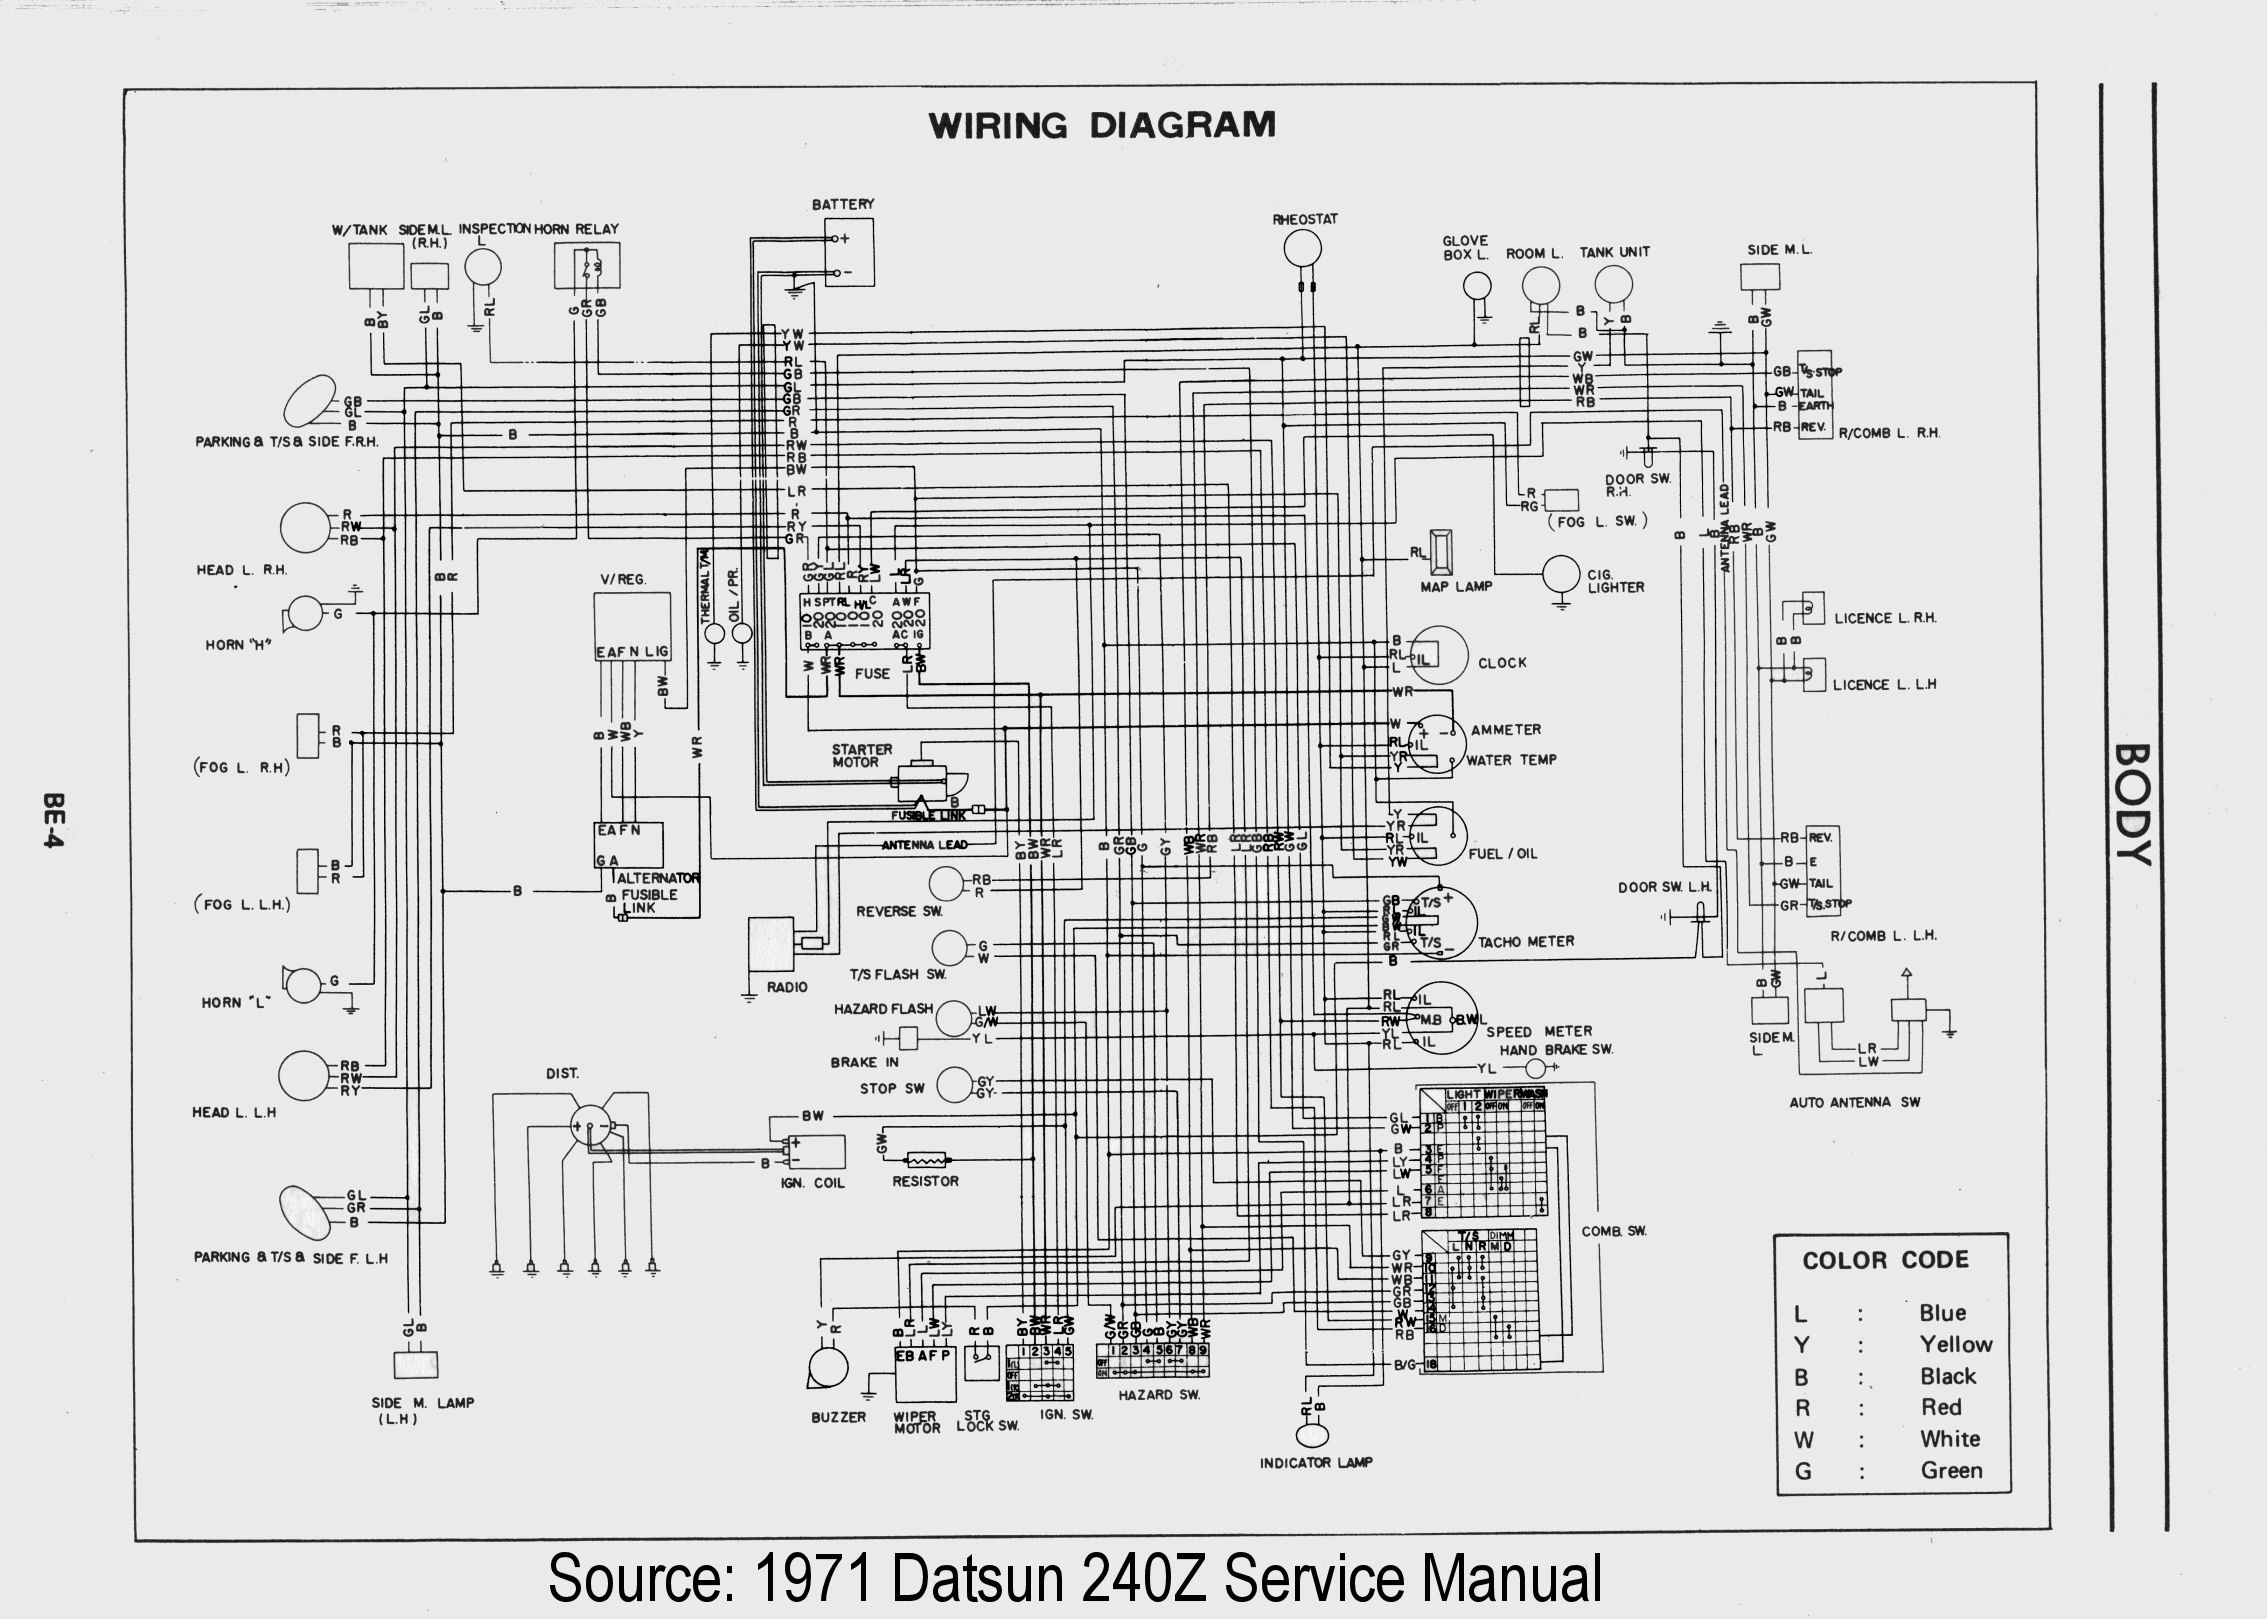 1971 Datsun 240z Fuse Box Manual Of Wiring Diagram Shovelhead Generic Troubleshooting Checklist Woodworkerb Rh Com